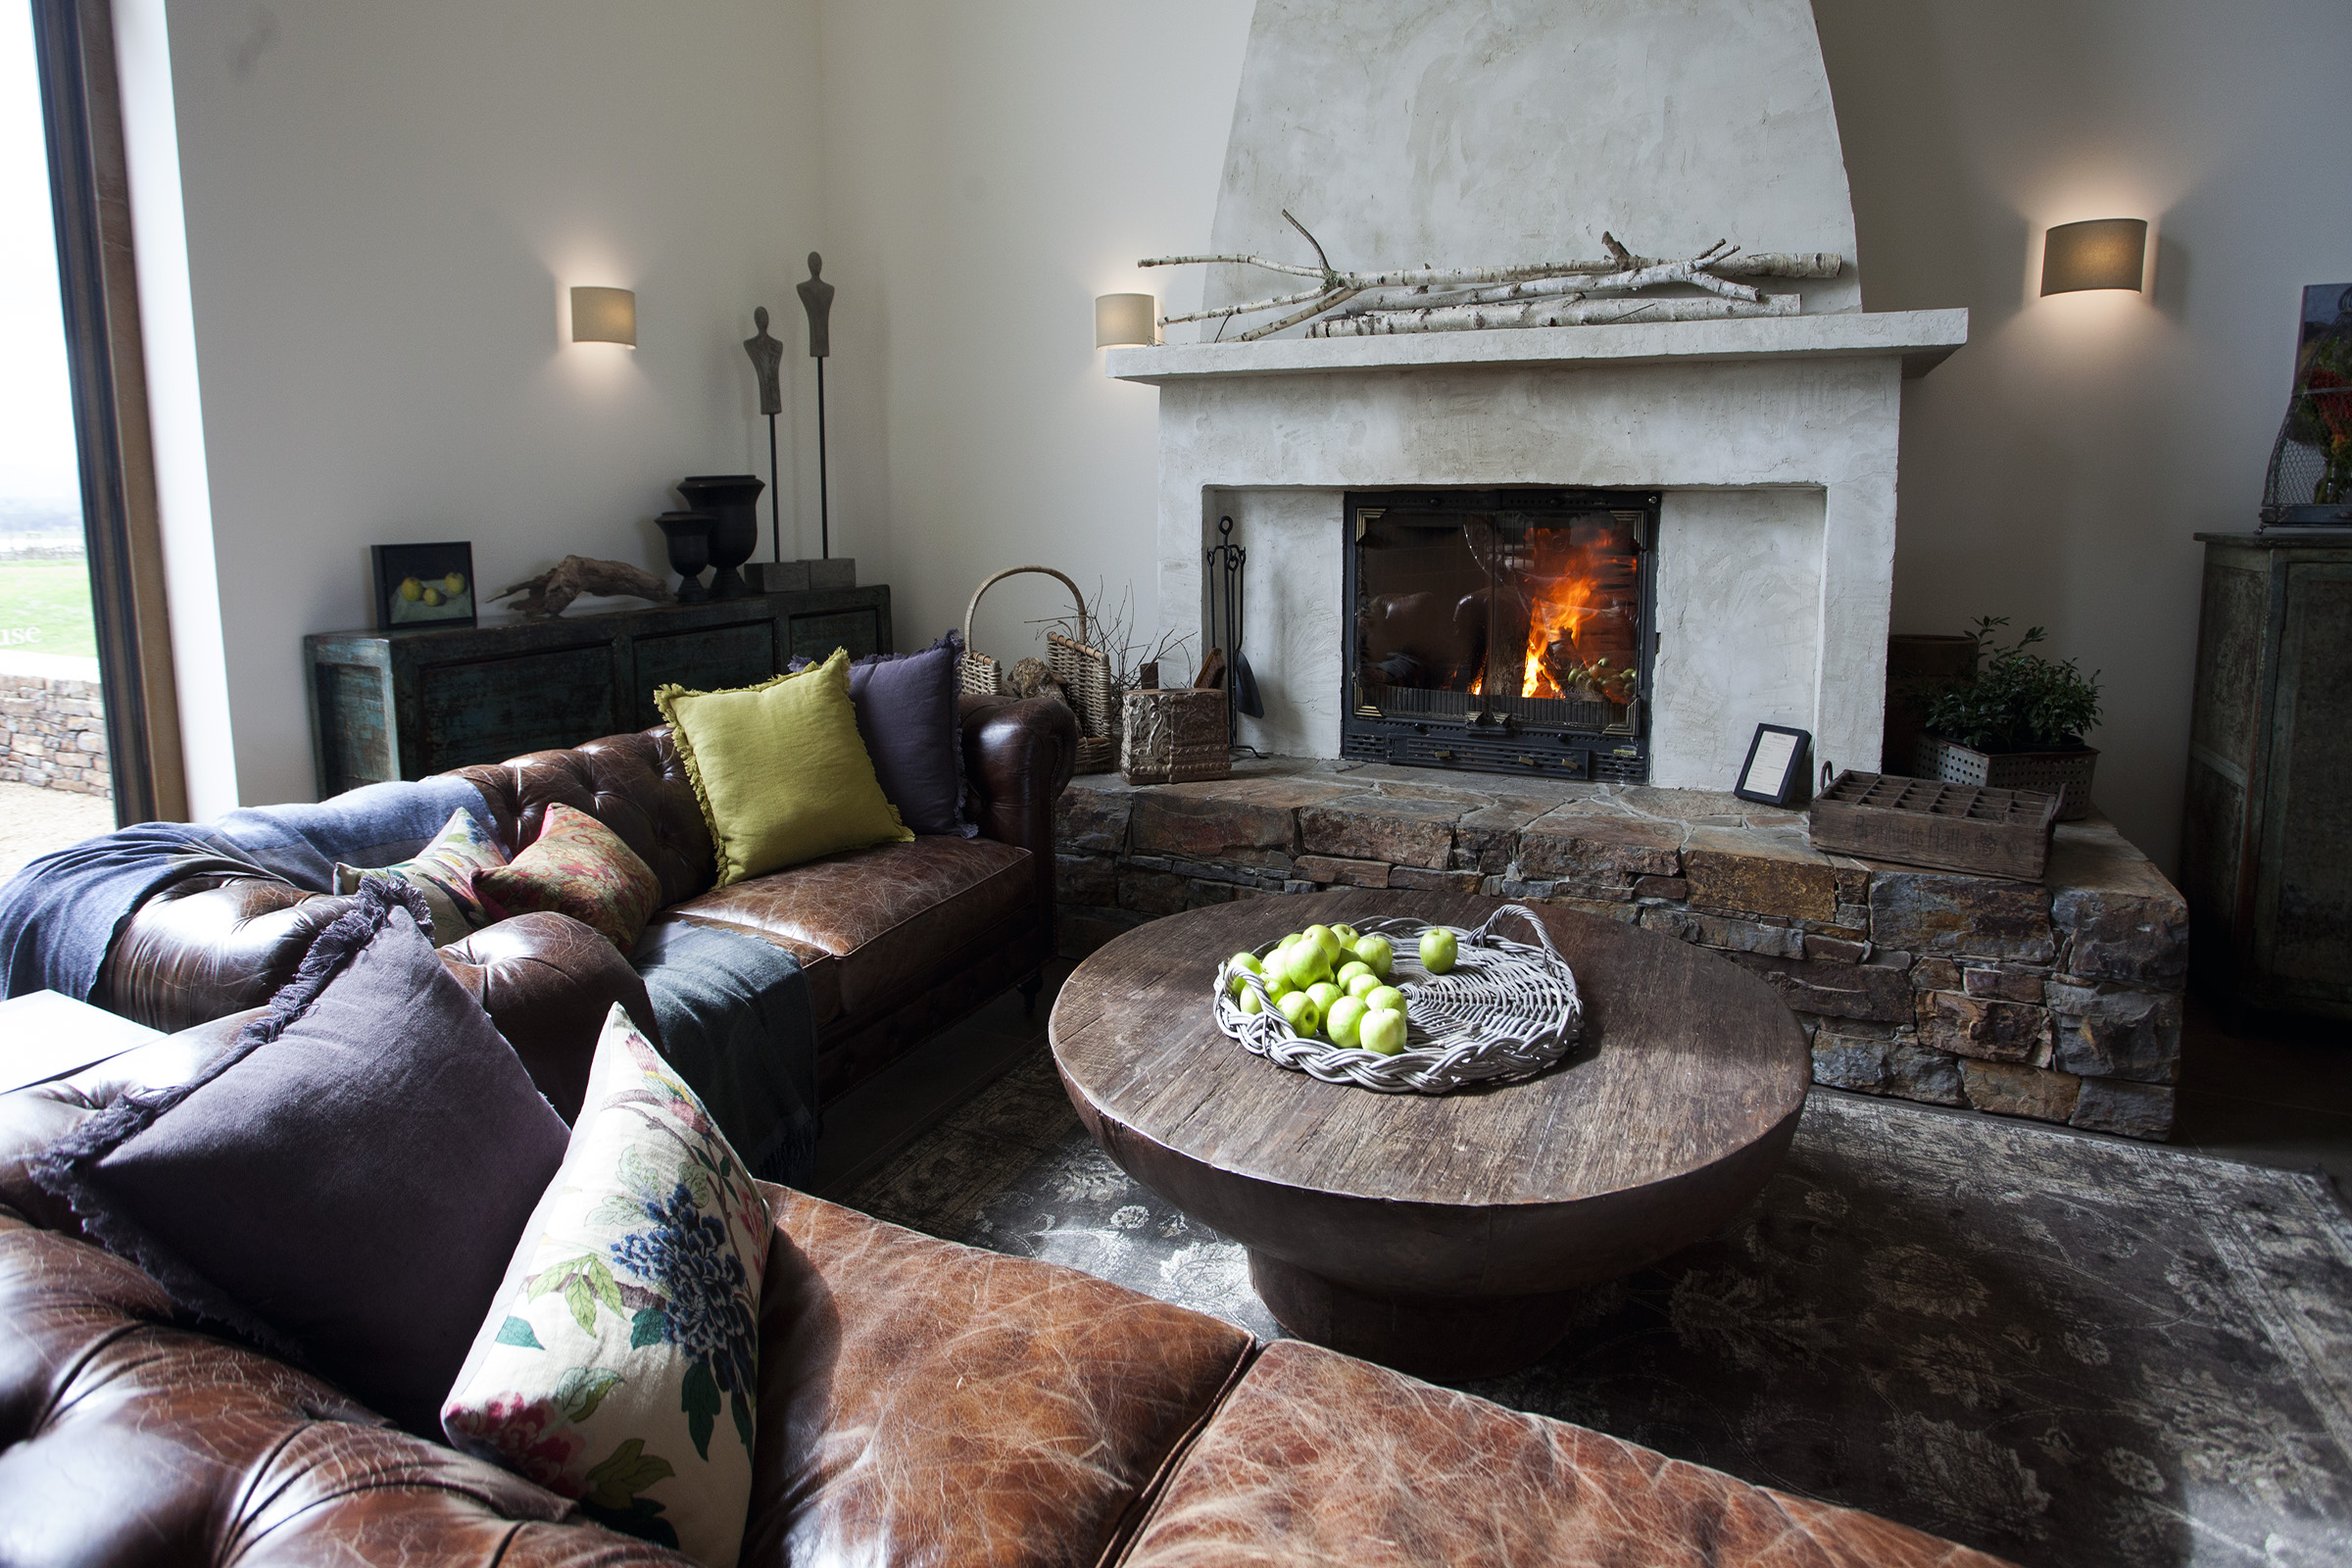 Www Cheminées Philippe Com Cheminees Philippe A Fireplace With The Best Of Both Heating Worlds